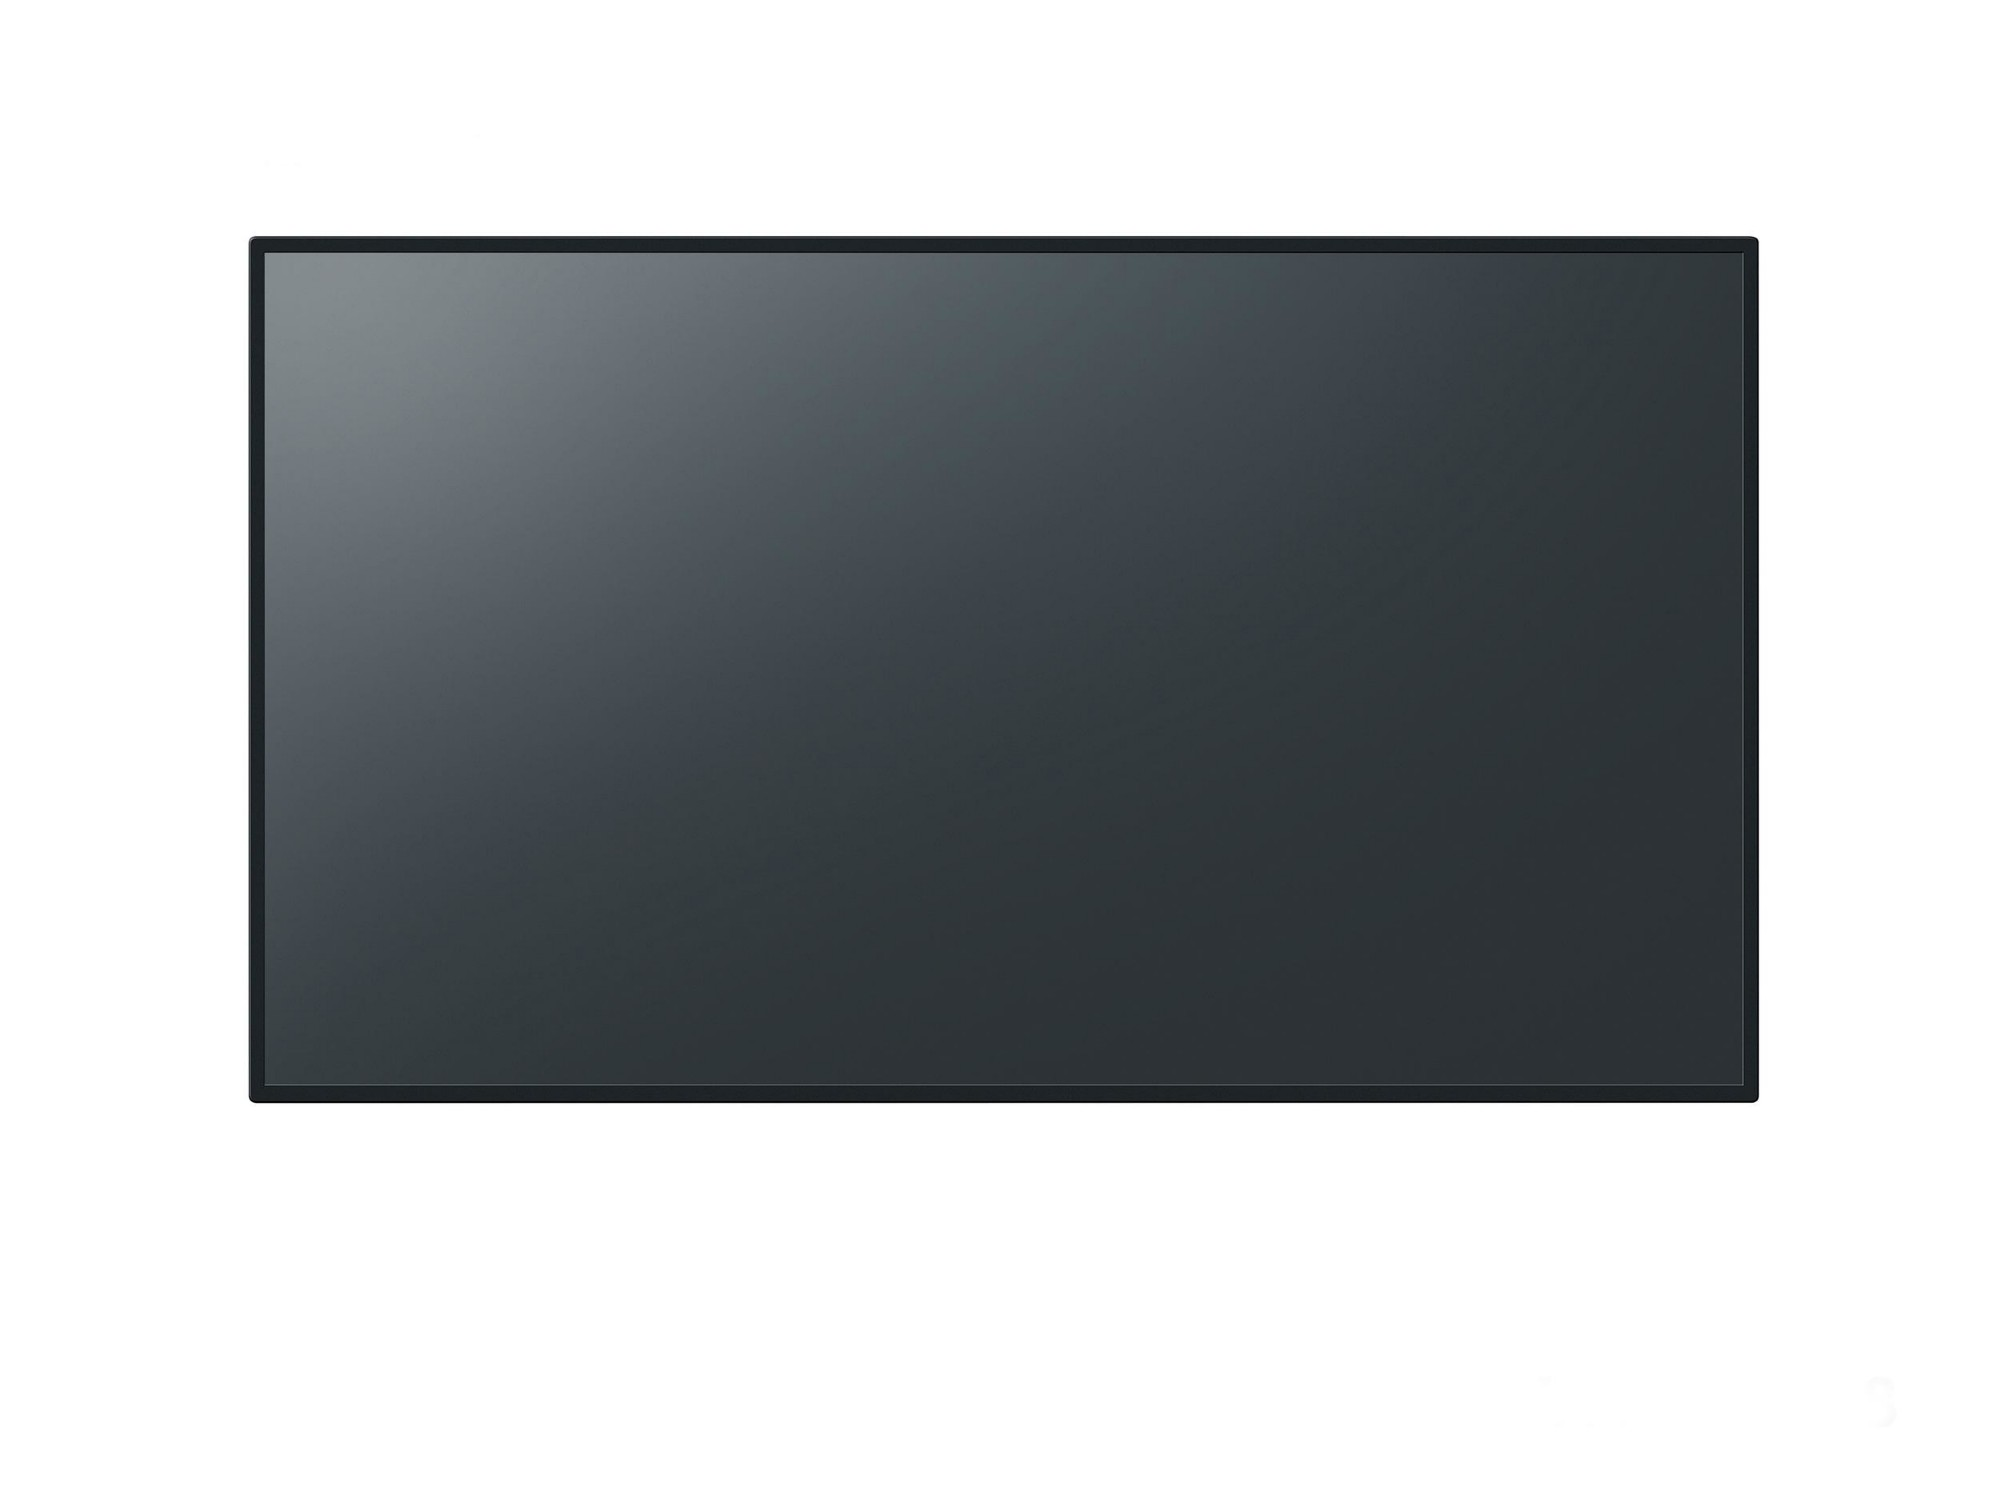 PANASONIC TH-55LFE8E DIGITAL SIGNAGE FLAT PANEL 55